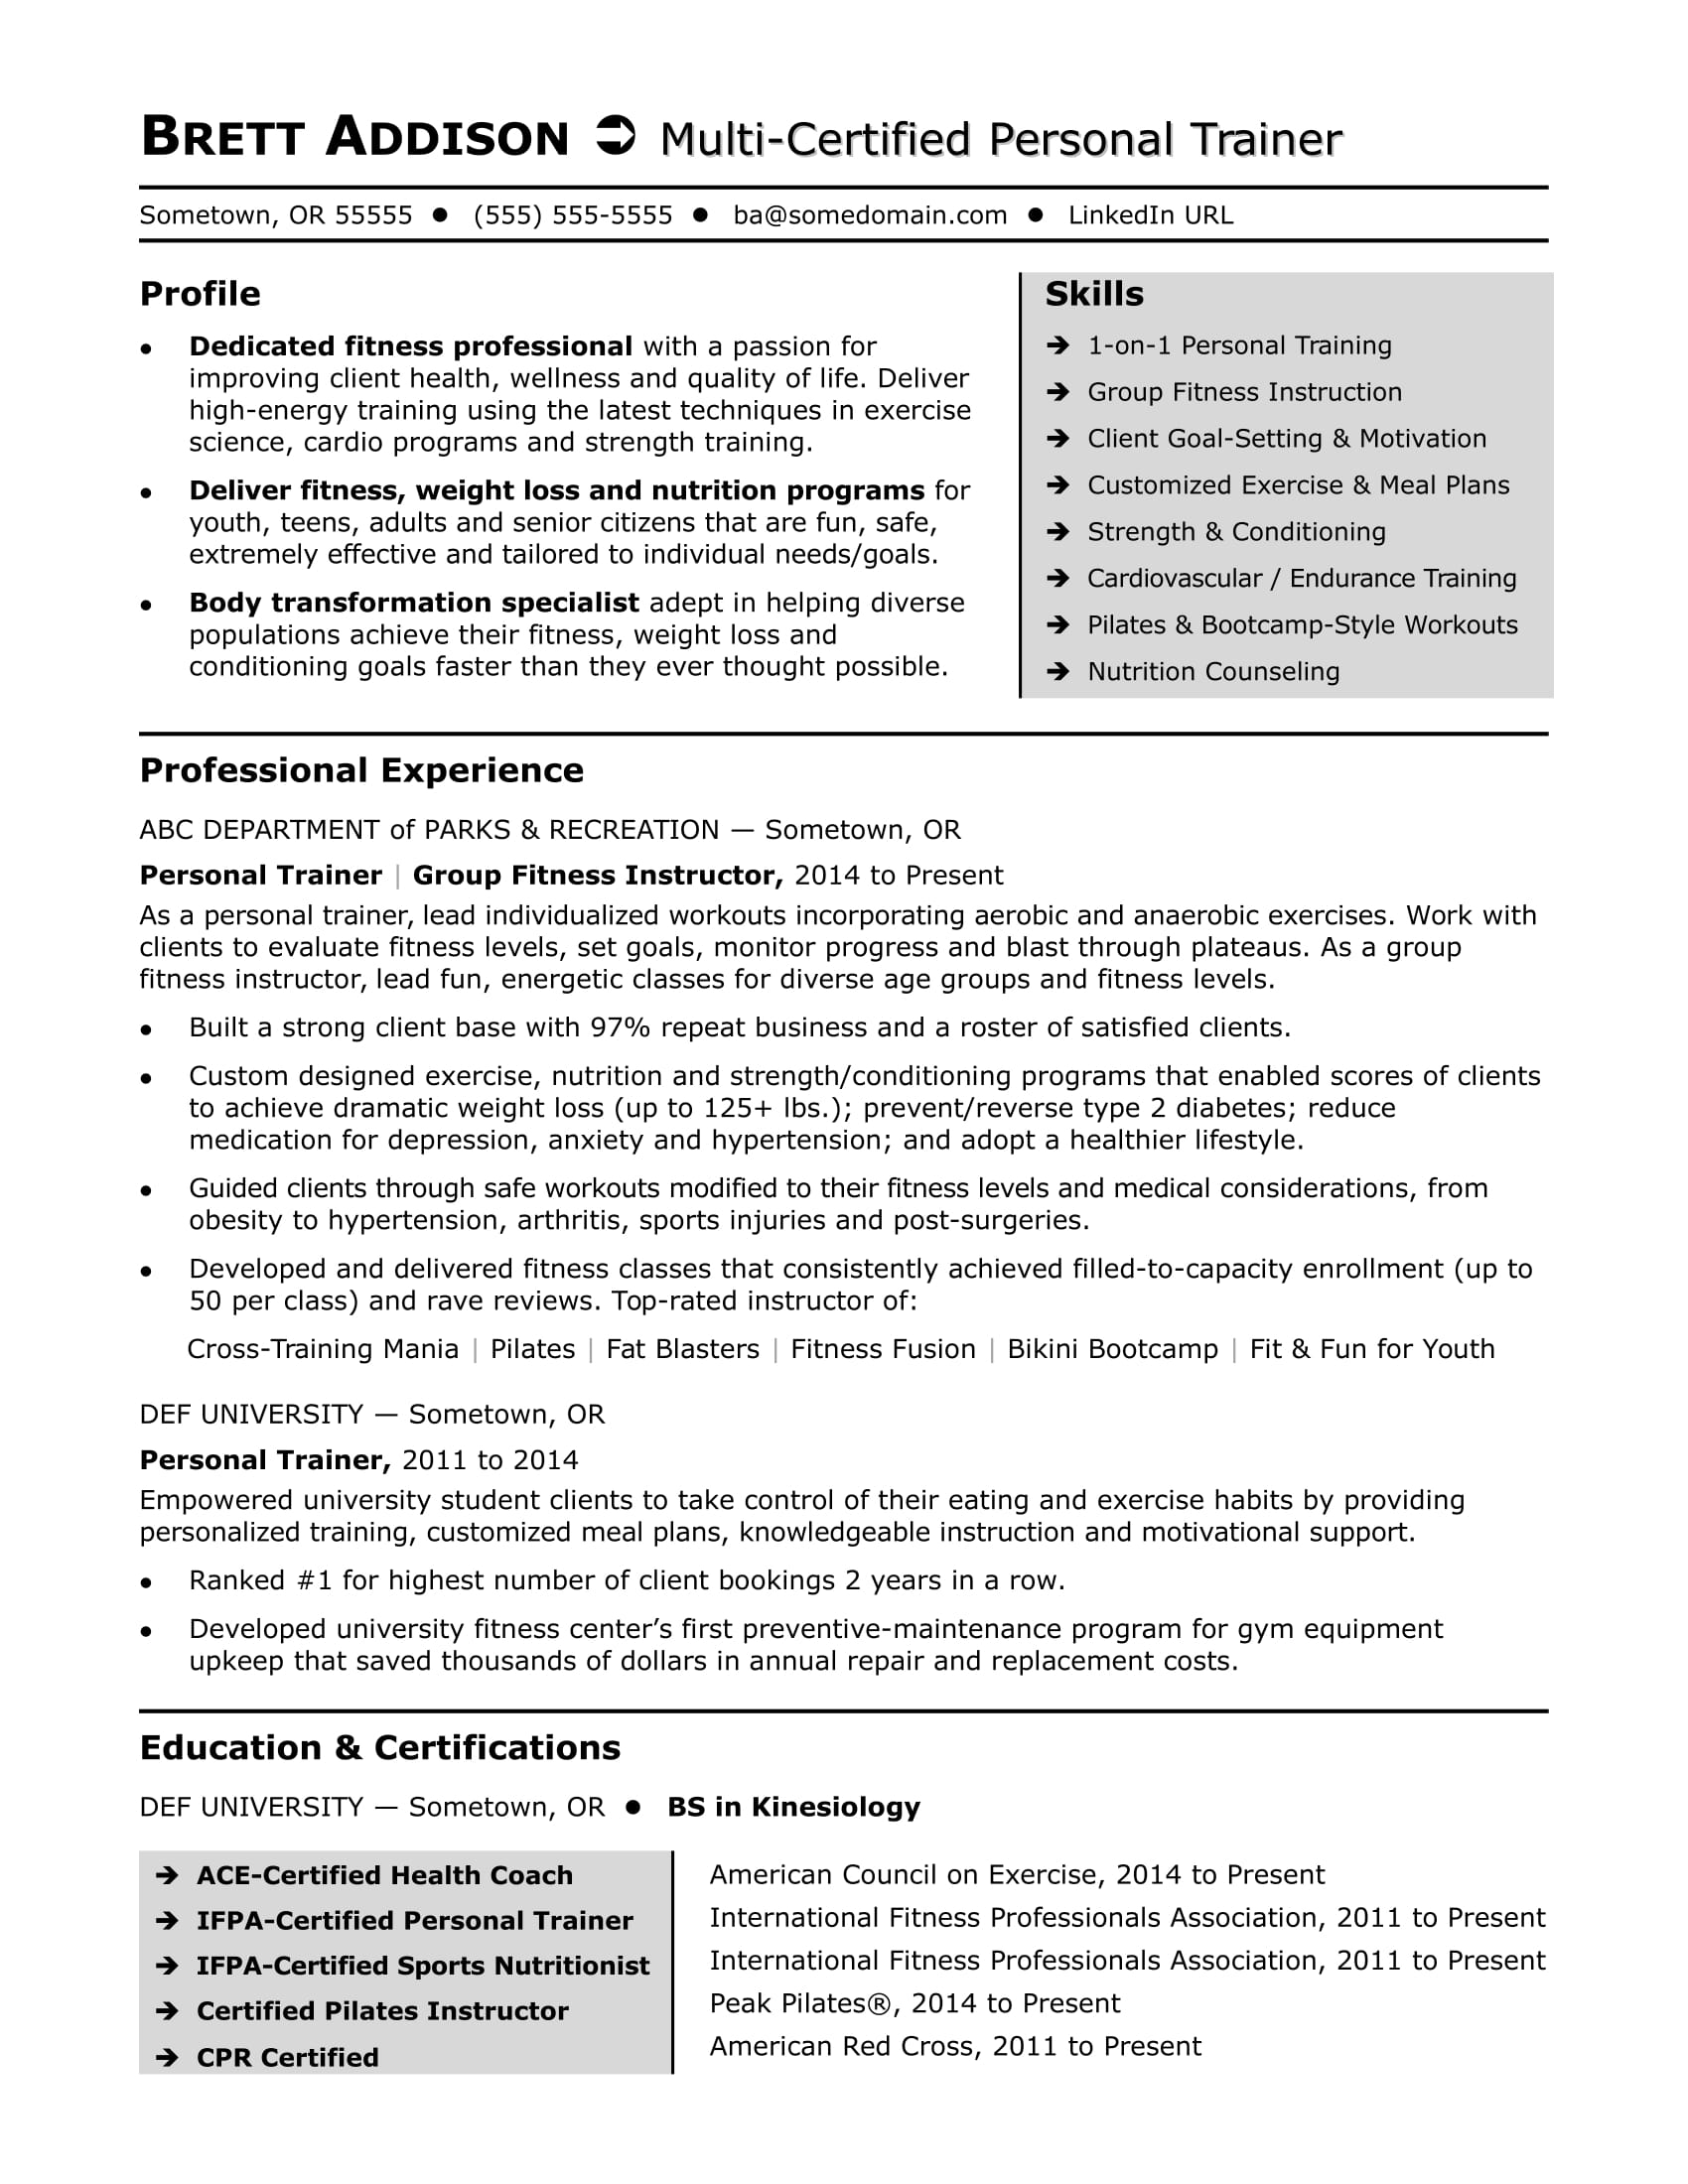 personal trainer resume sample monster areas of strength examples lawn service film crew Resume Areas Of Strength Examples Resume